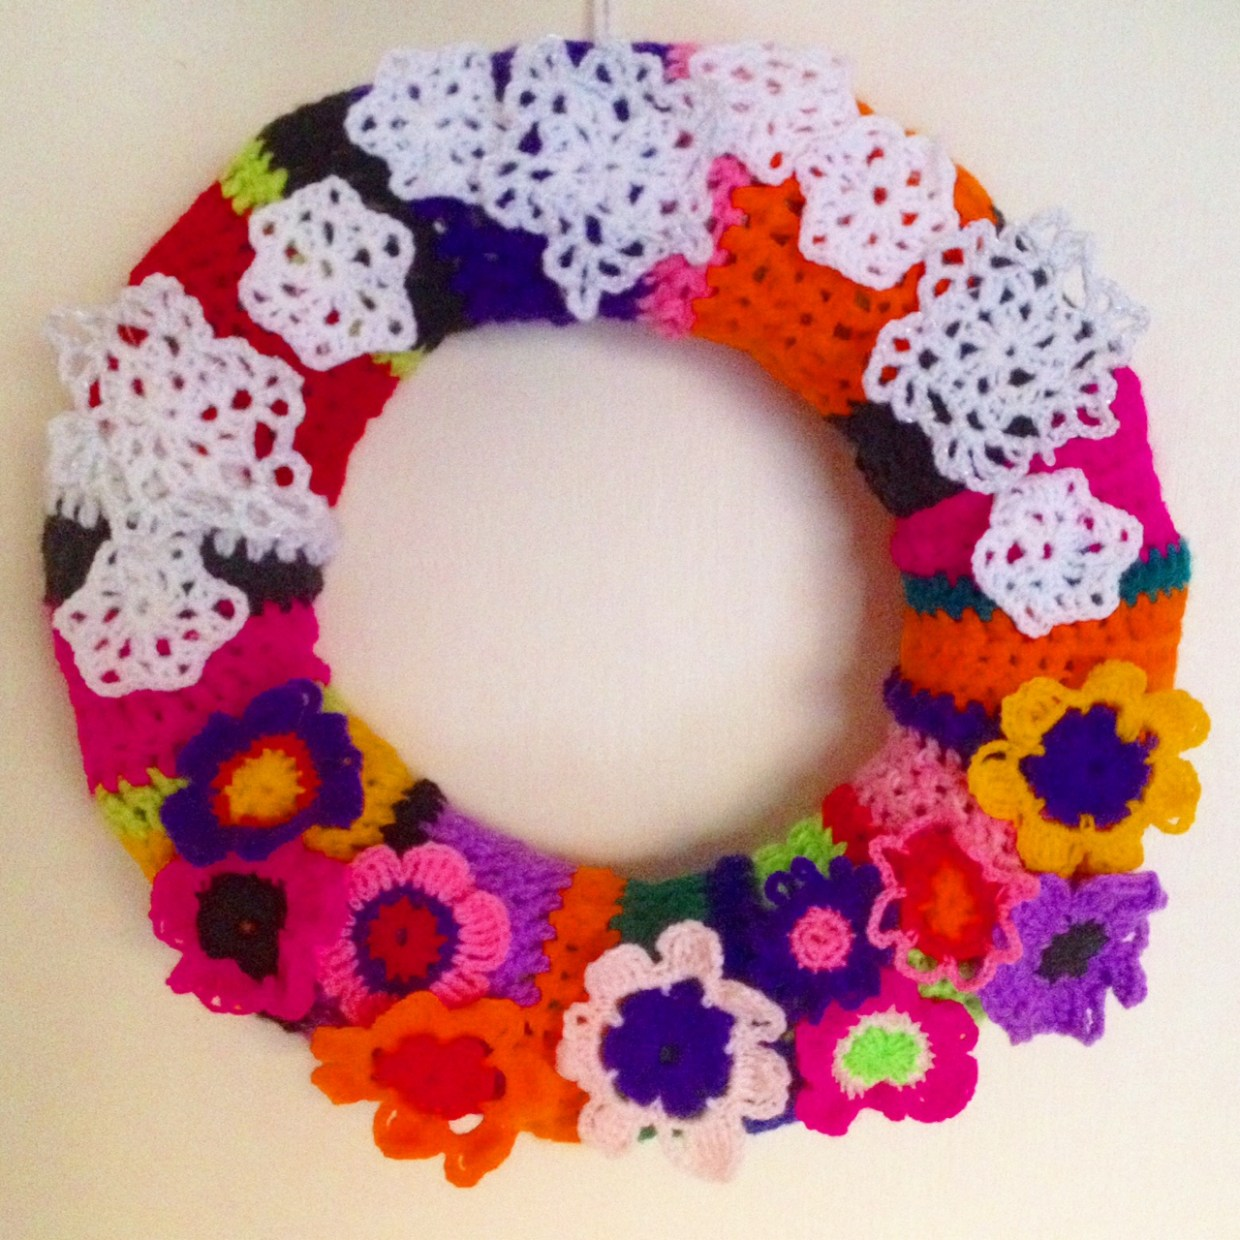 My tropical crochet Christmas wreath made from single use plastic bottles